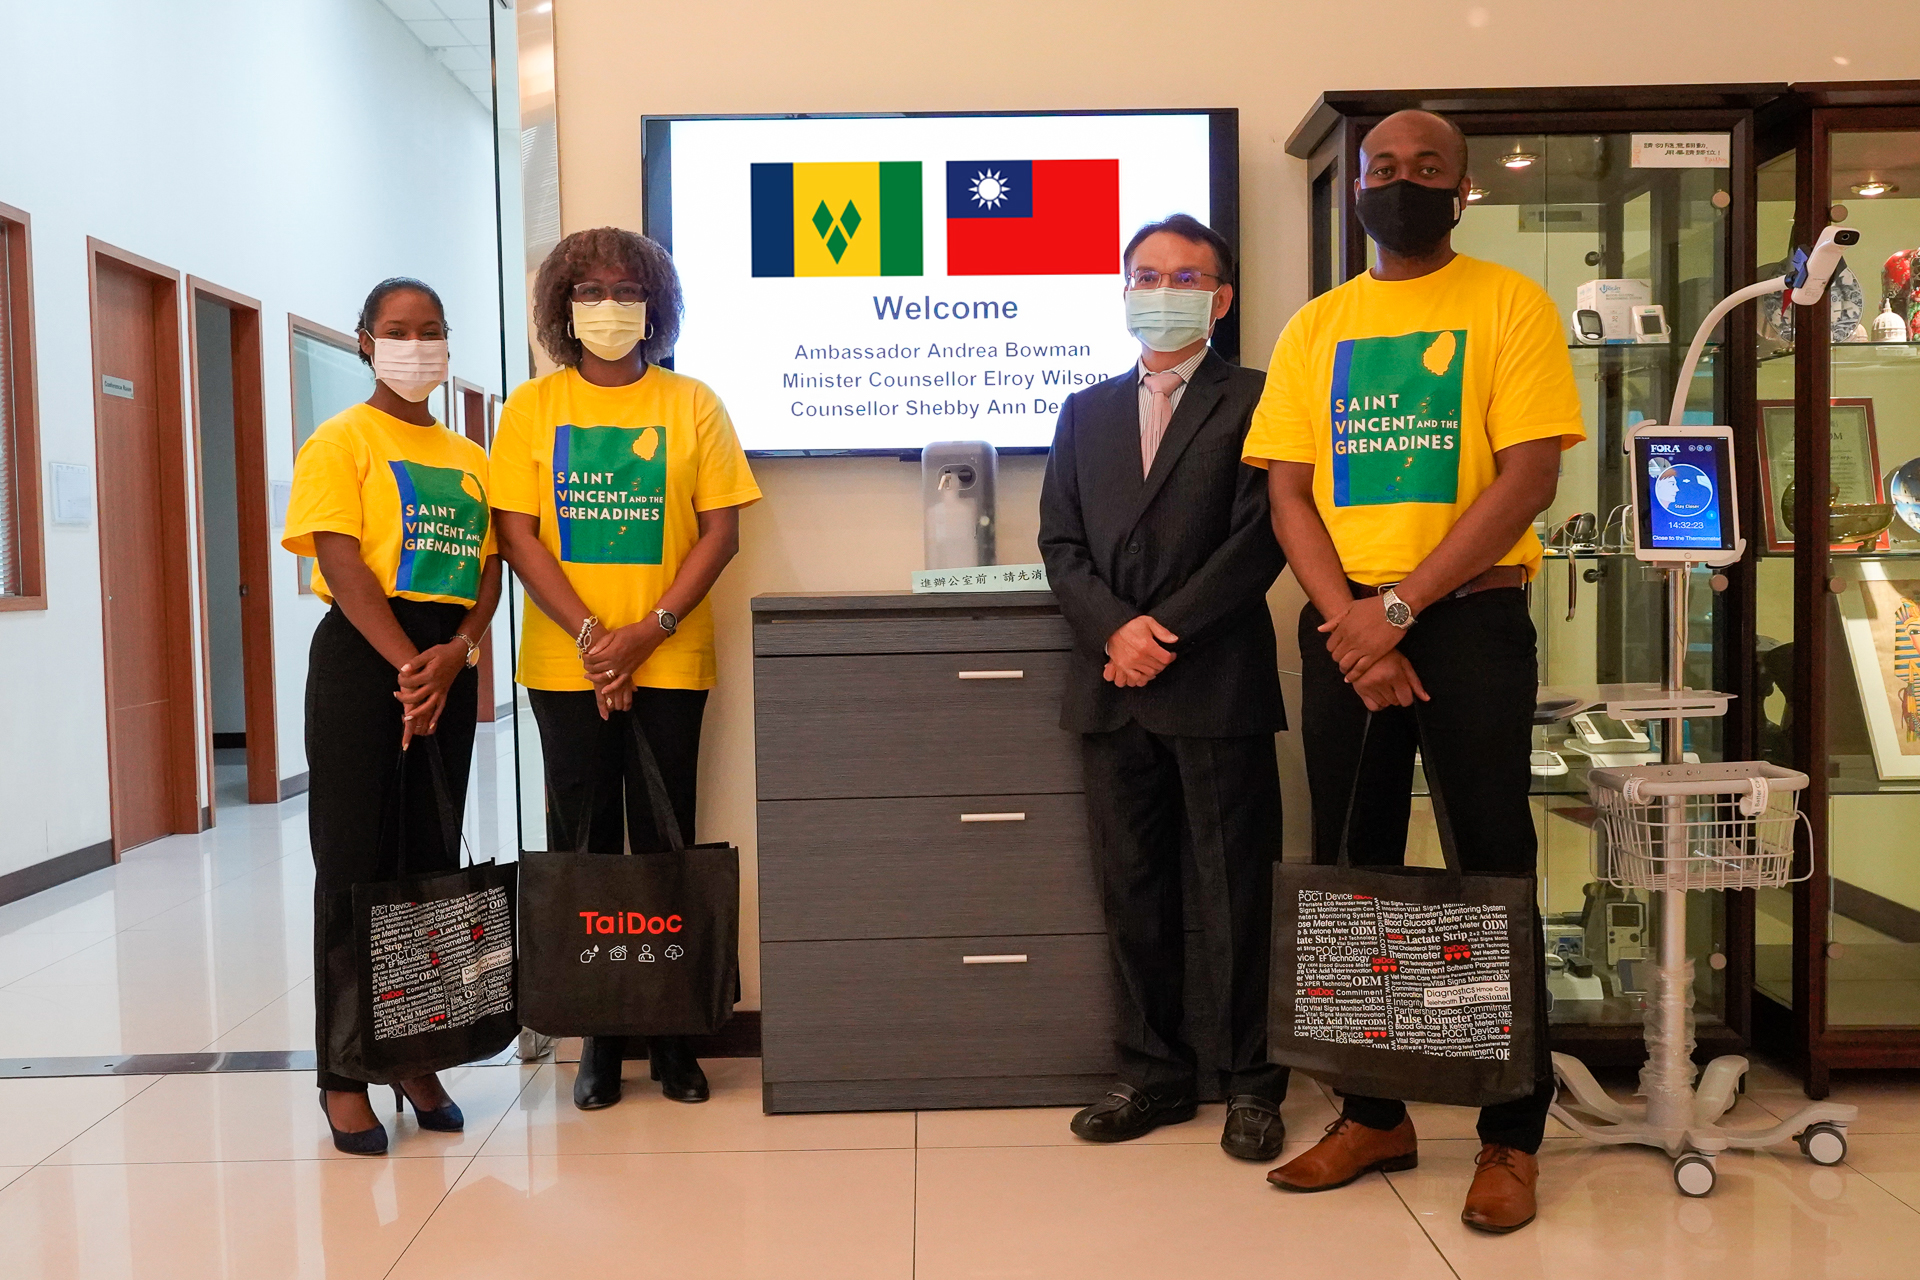 The Ambassador of Saint Vincent and the Grenadines, Andrea Clare Bowman, said that Saint Vincent and the Grenadines has to date conducted 26,675 tests, and has successfully screened and detected 738 COVID-19 positive patients since March, 2020. After cross-comparison with RT-PCR and other antigen rapid tests, TaiDoc antigen rapid tests are significantly faster and more accurate than other similar antigen rapid tests. COVID-19 antigen rapid tests can greatly increase the capability of COVID-19 infection detection in Saint Vincent and the Grenadines and reduce the huge pressure and impact that the country's government and medical system have faced as a result of the COVID-19 pandemic. Following negotiations with Ambassador Bowman, TaiDoc Technology decided to donate an additional 10,000 doses of antigen rapid tests to Saint Vincent and the Grenadines and the company hopes to offer more help.